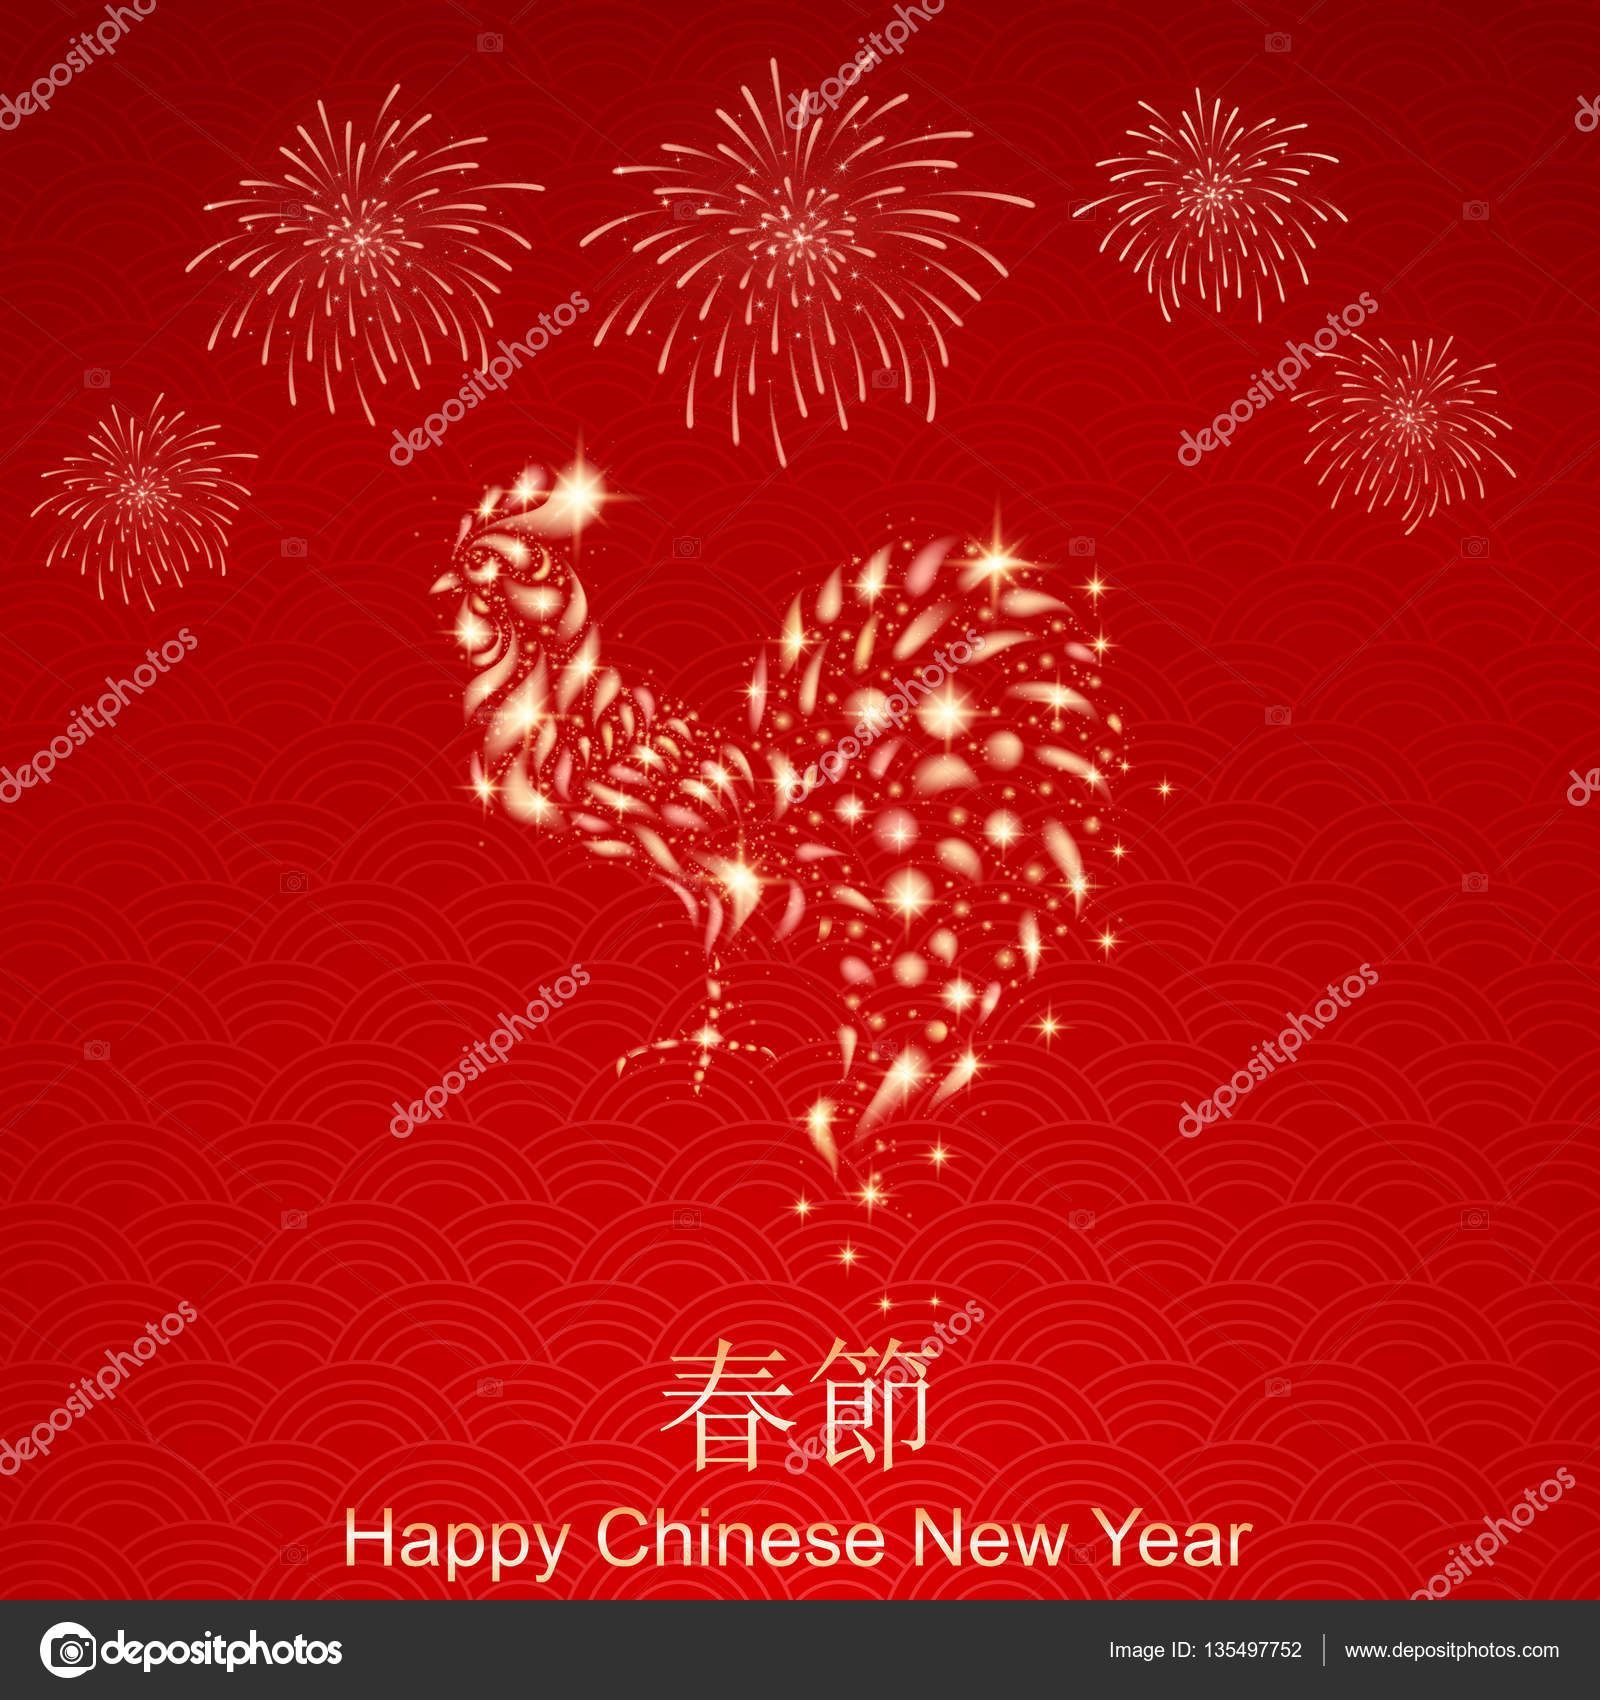 happy chinese new year 2017 card with gold rooster and fireworks english translate spring festival lunar new year greetings vector by artabramoa